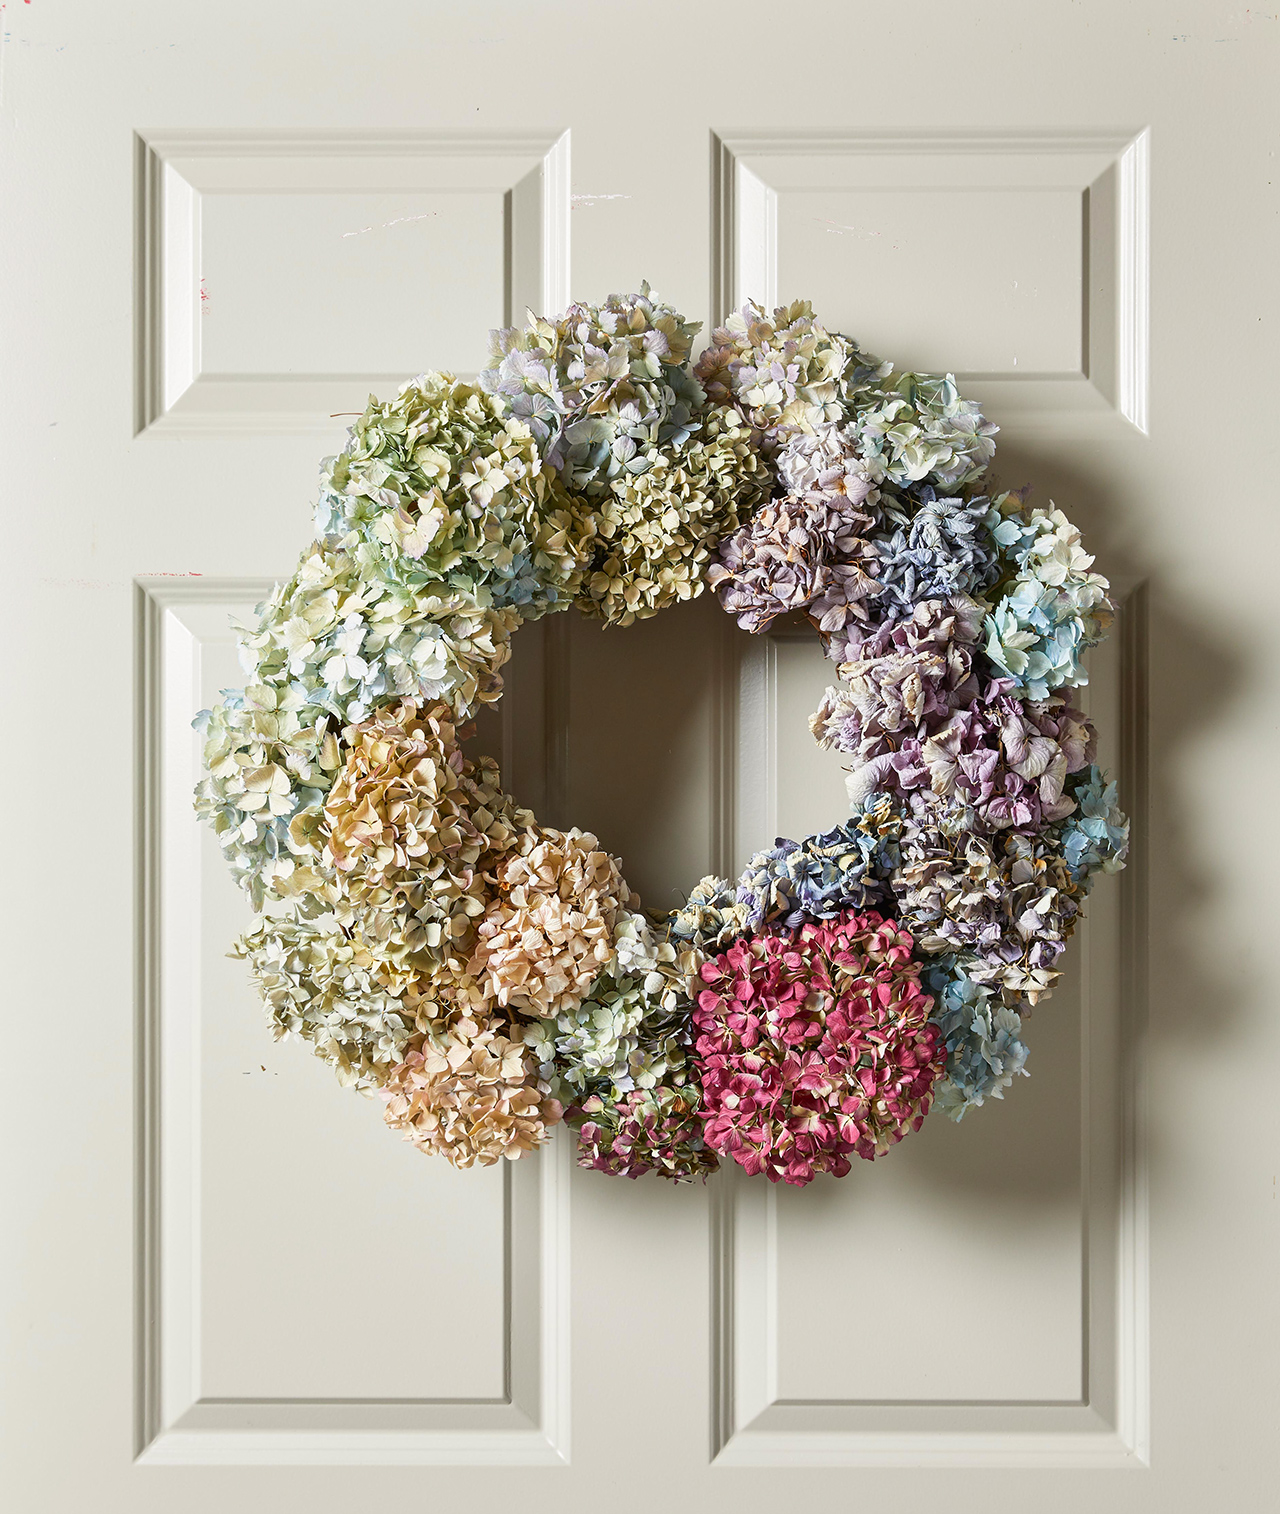 hydrangea blooms wreath hanging on door